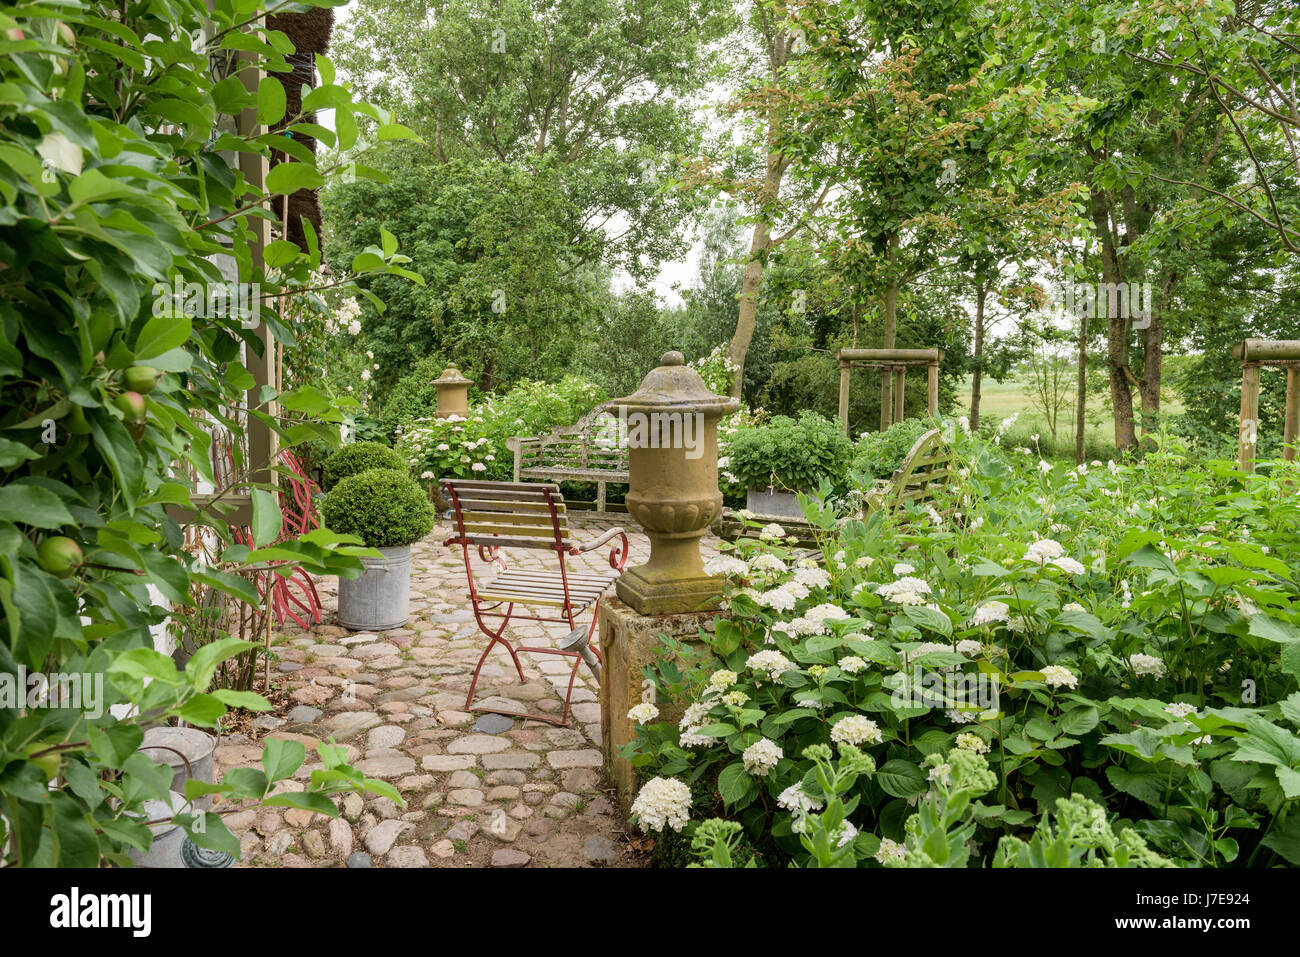 Pebble stone path with clipped box spheres and chair in grounds of 17th century farmhouse - Stock Image